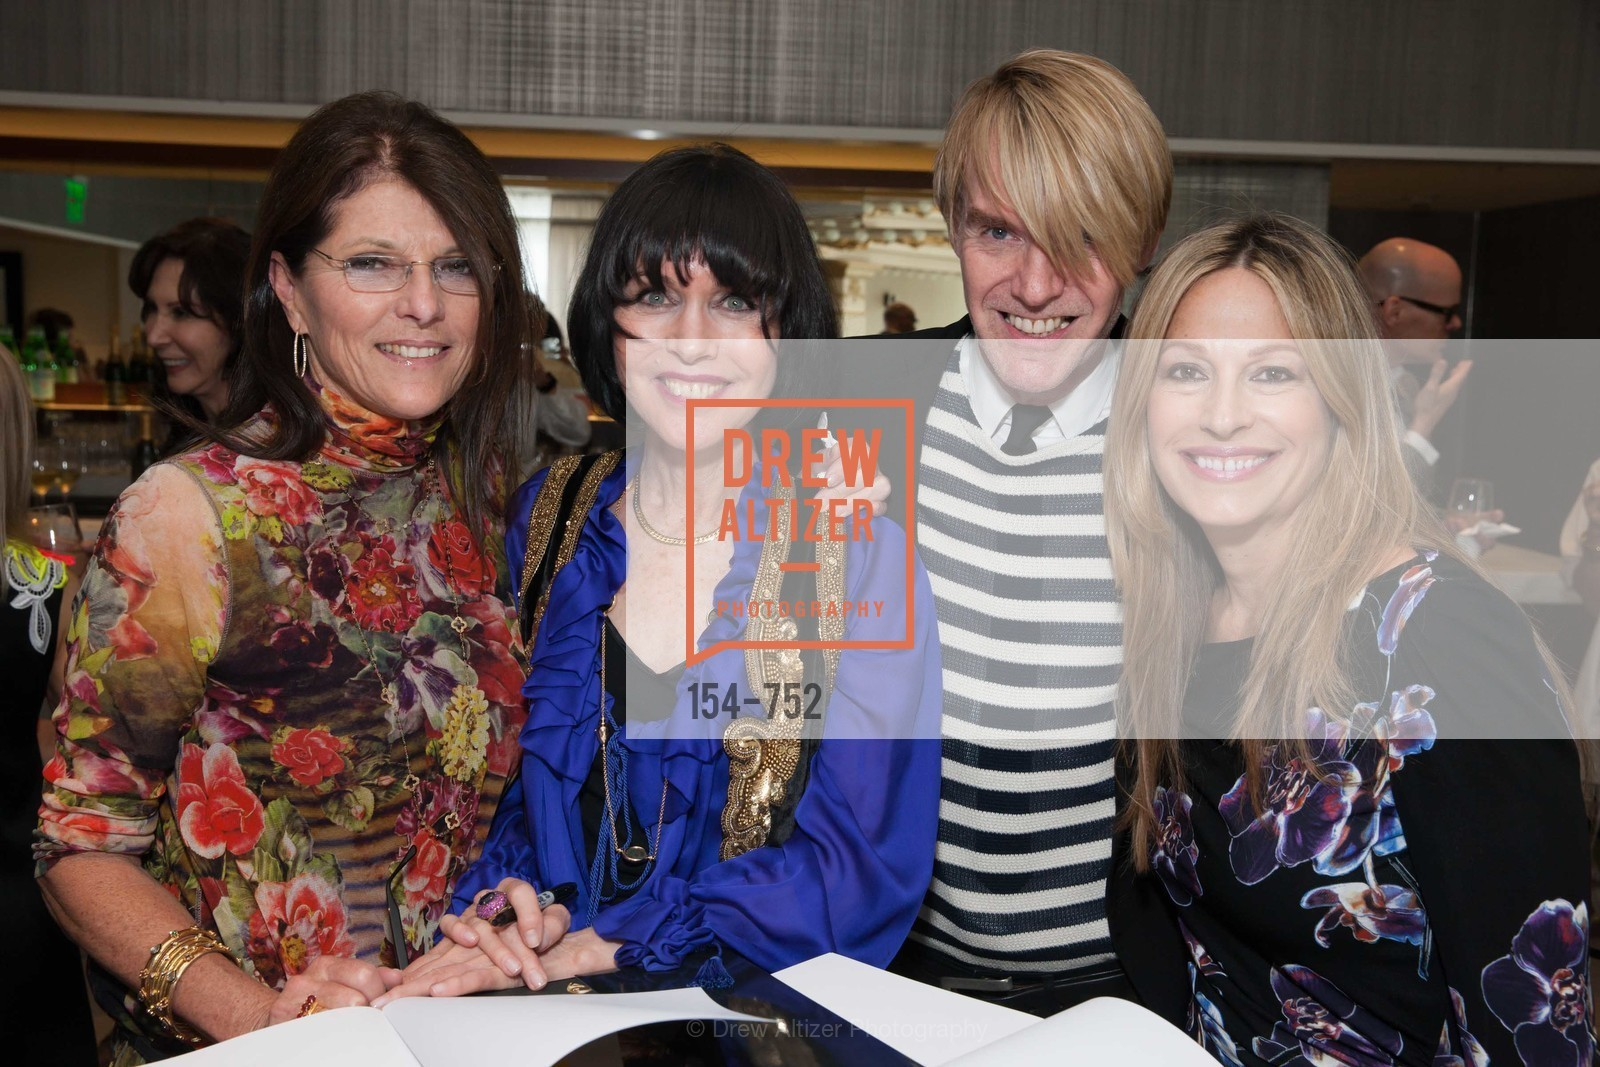 Lorrae Rominger, Christine Suppes, Ken Downing, Carolyne Zinko, Electric Fashion Book Signing with Christine Suppes & Ken Downing at THE ROTUNDA, NEIMAN MARCUS, Neiman Marcus, Rotunda, May 27th, 2015,Drew Altizer, Drew Altizer Photography, full-service agency, private events, San Francisco photographer, photographer california